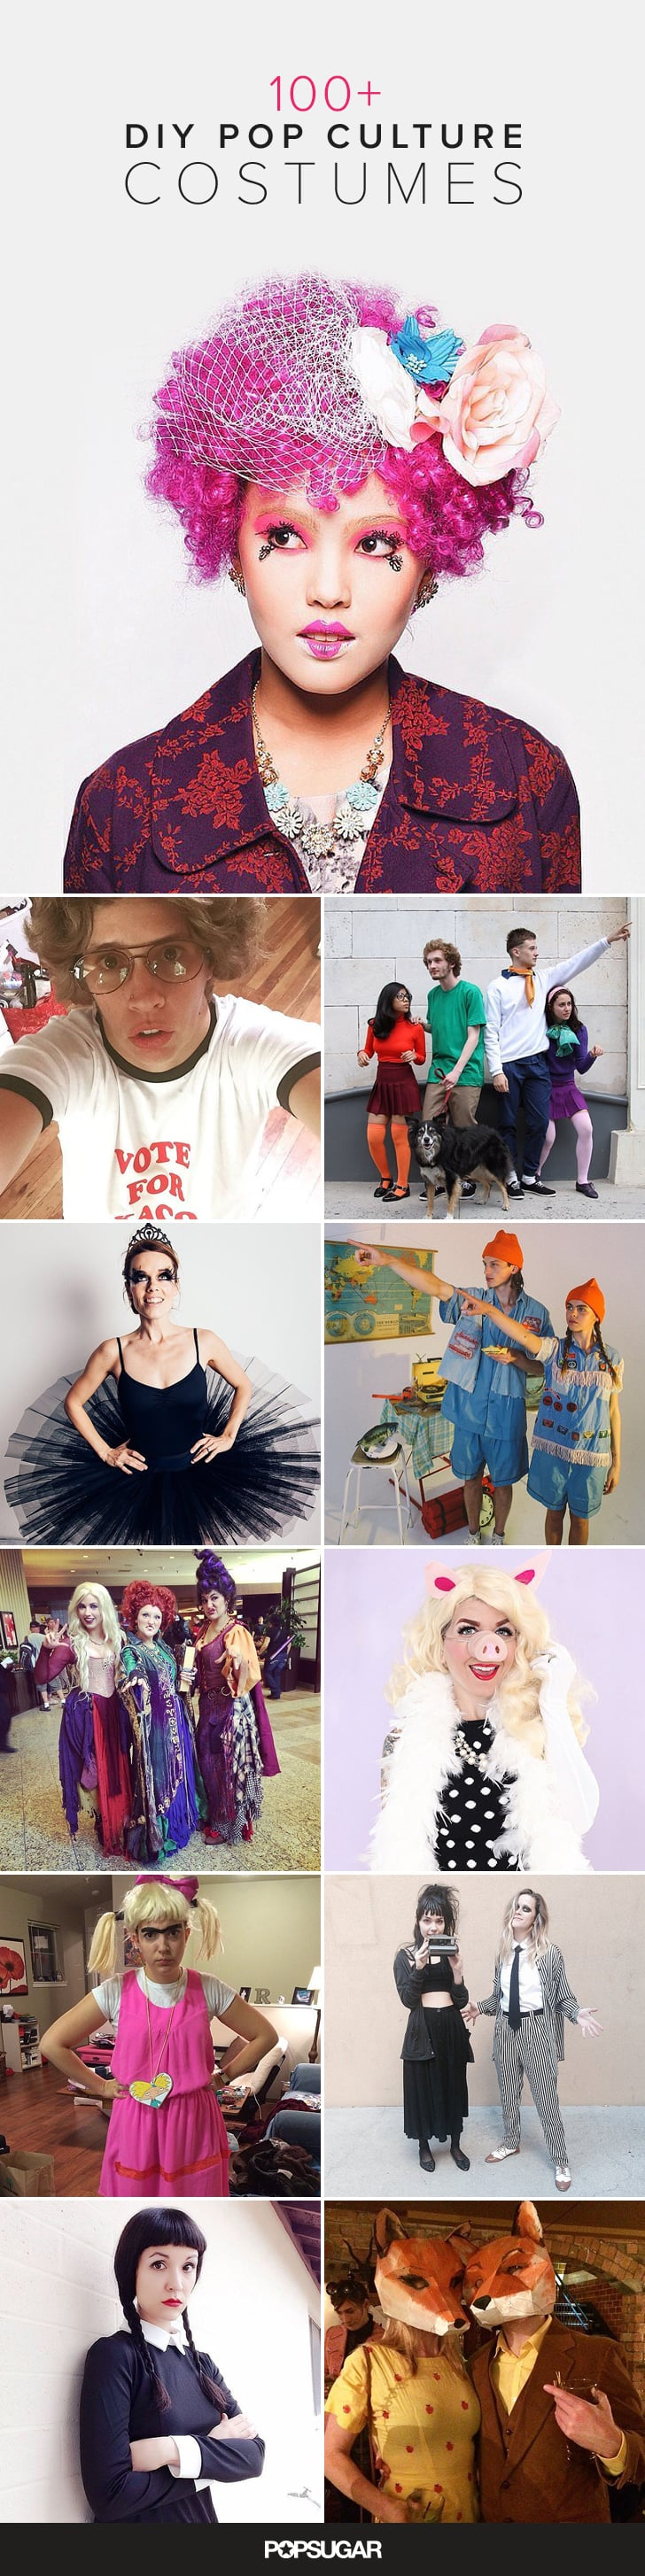 DIY Costumes From TV Shows and Movies | POPSUGAR Australia ...